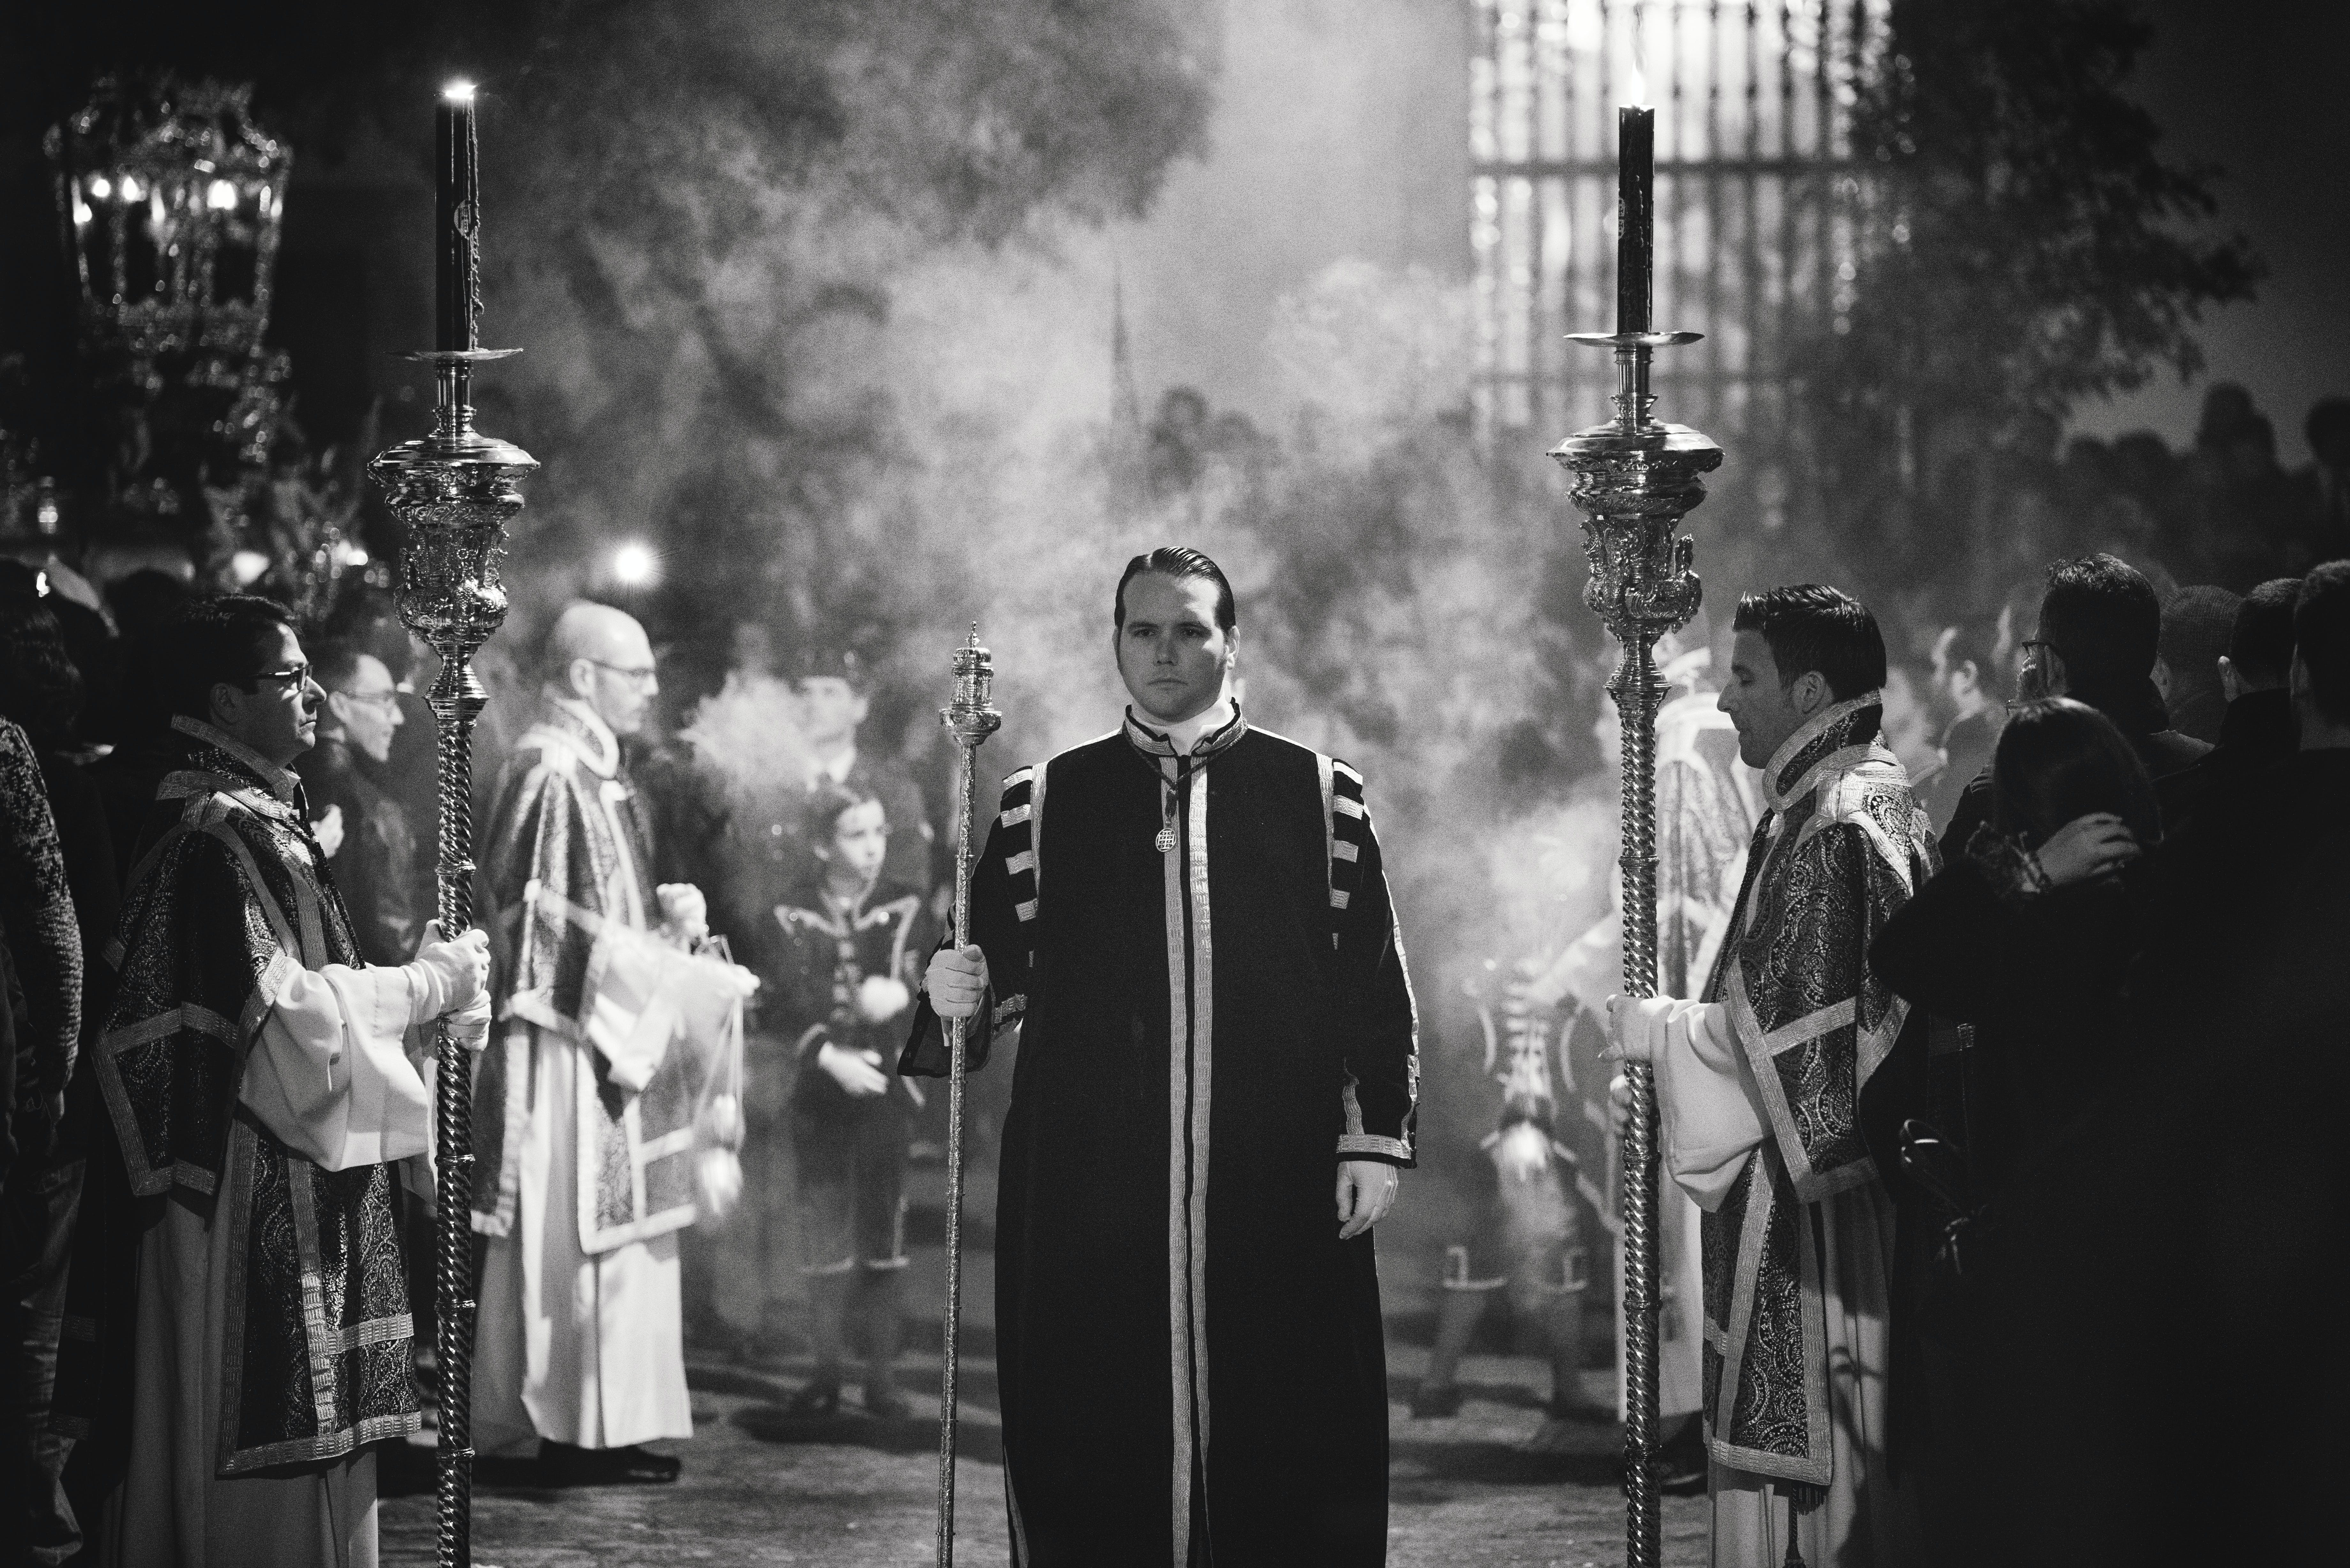 Grayscale Photography Of Priests